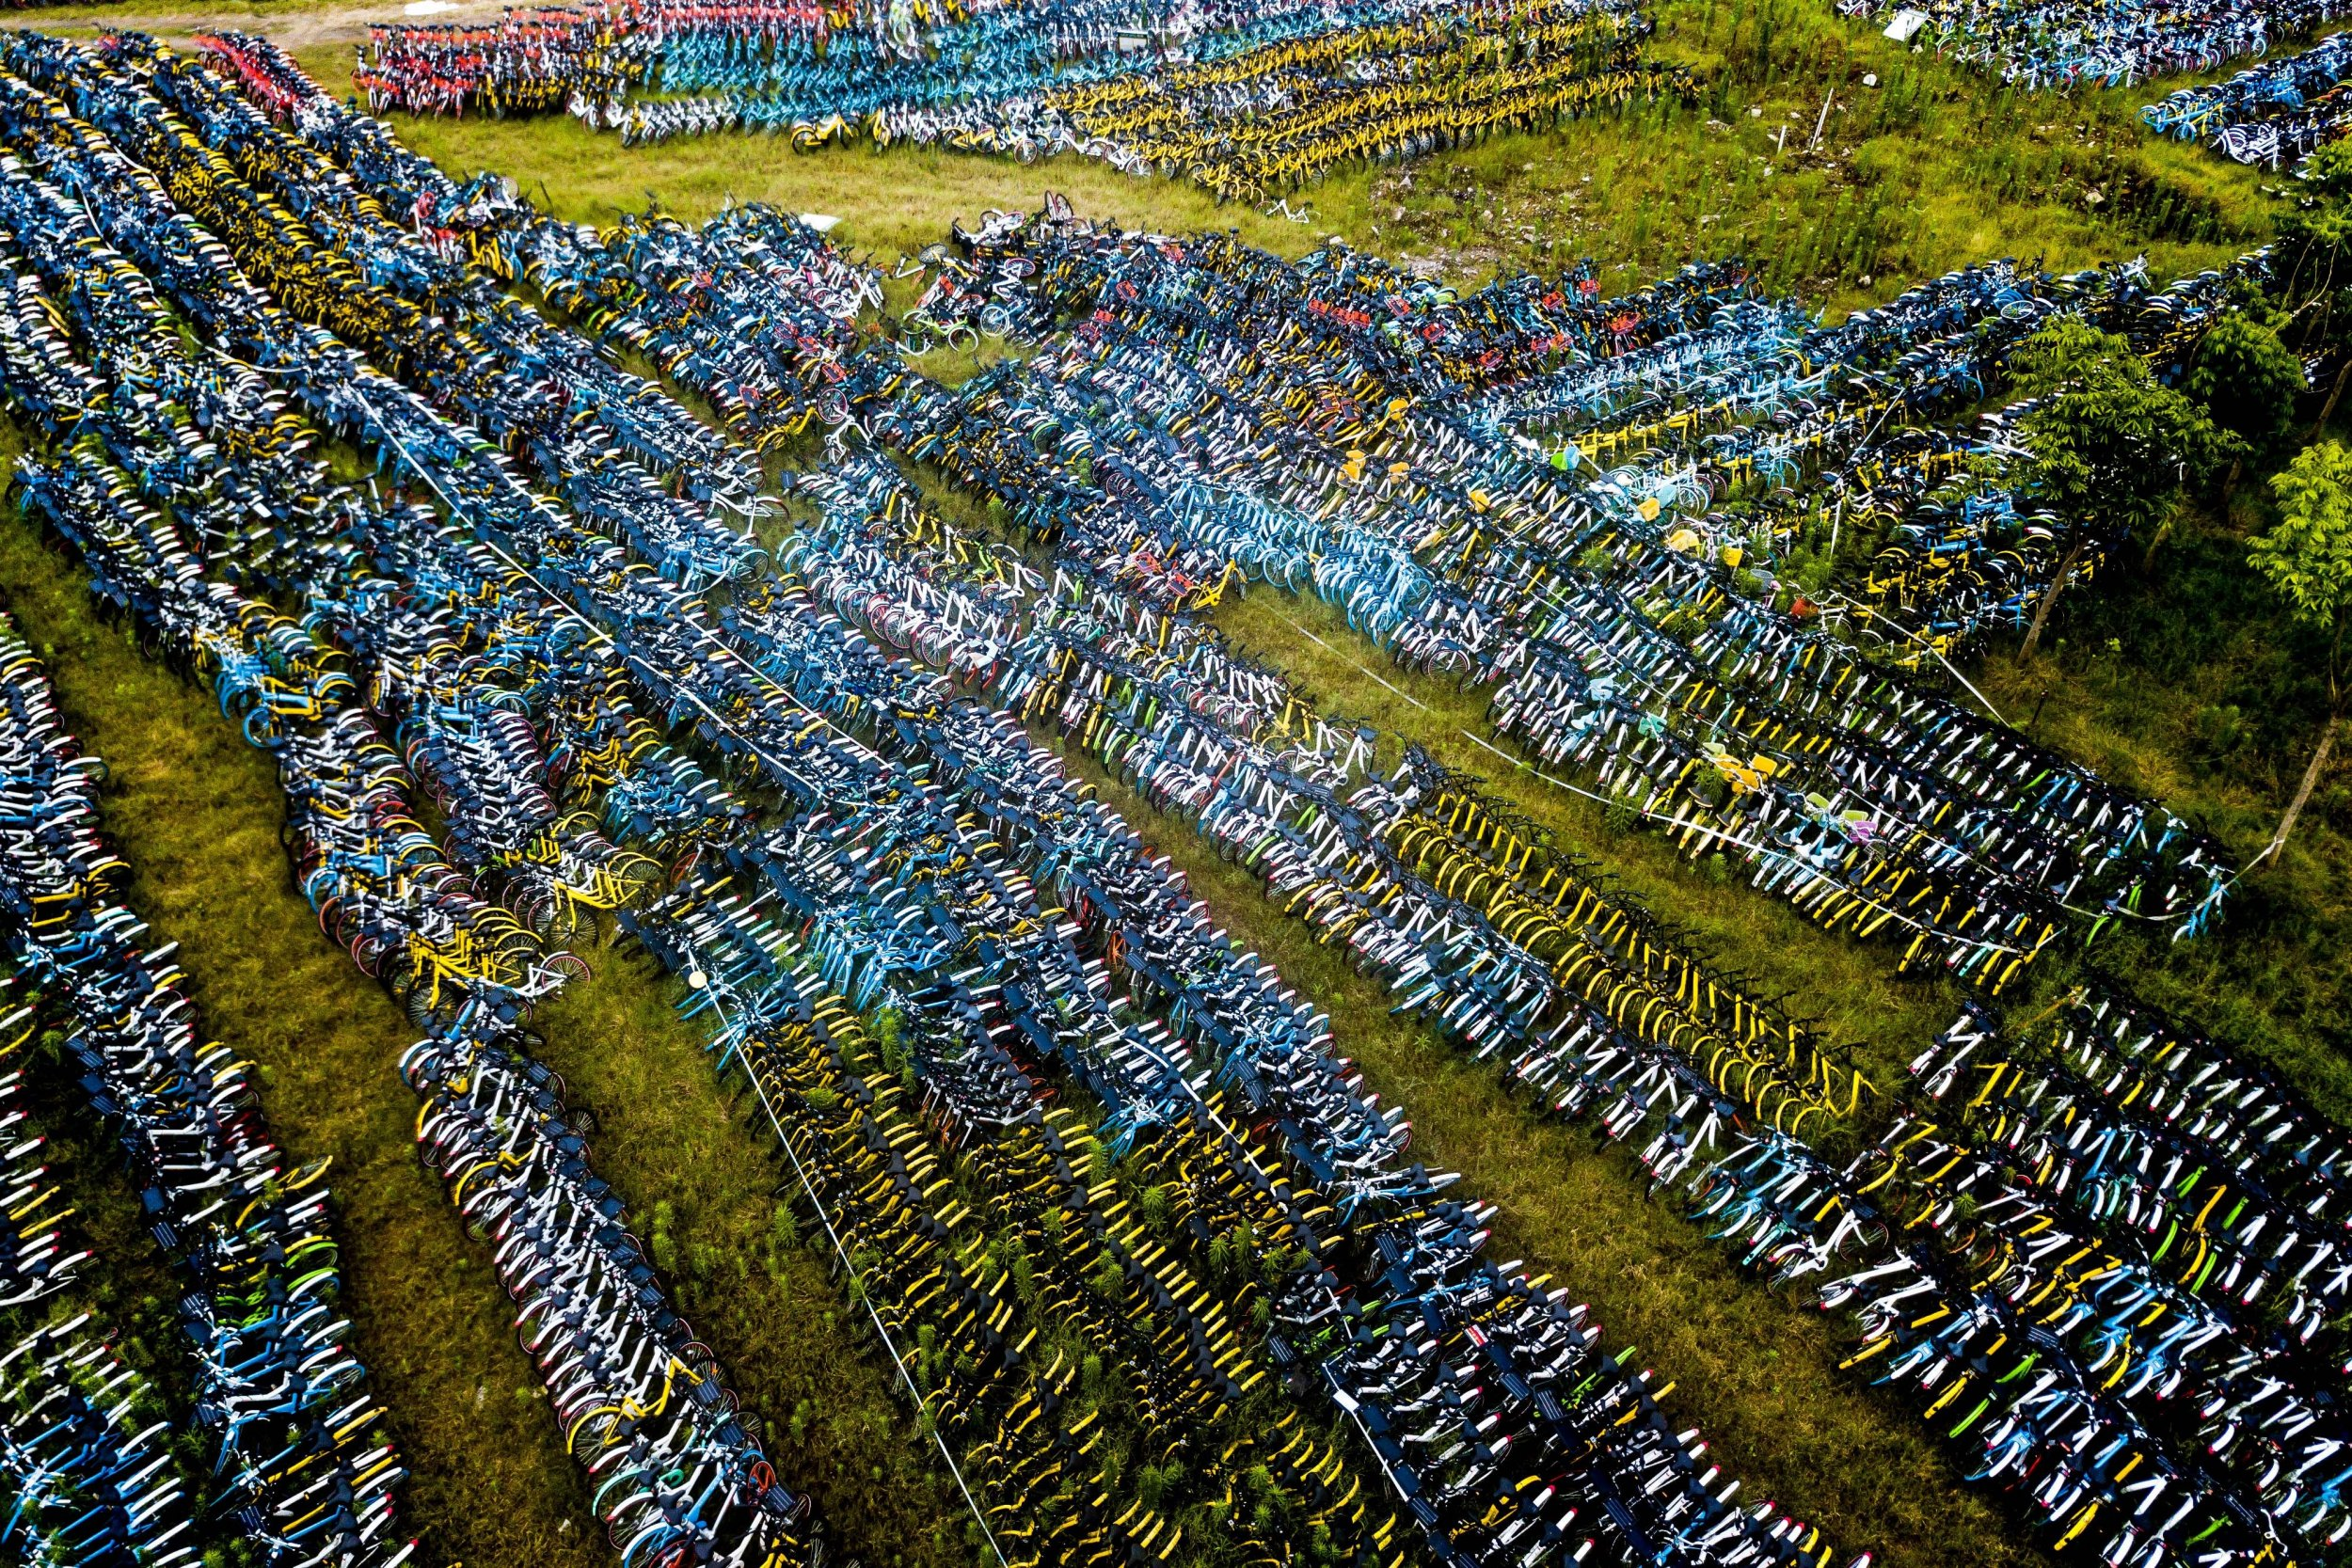 Incredible Pictures Of Chinas Streets Littered With Thousands Of Damaged Rental Bikes